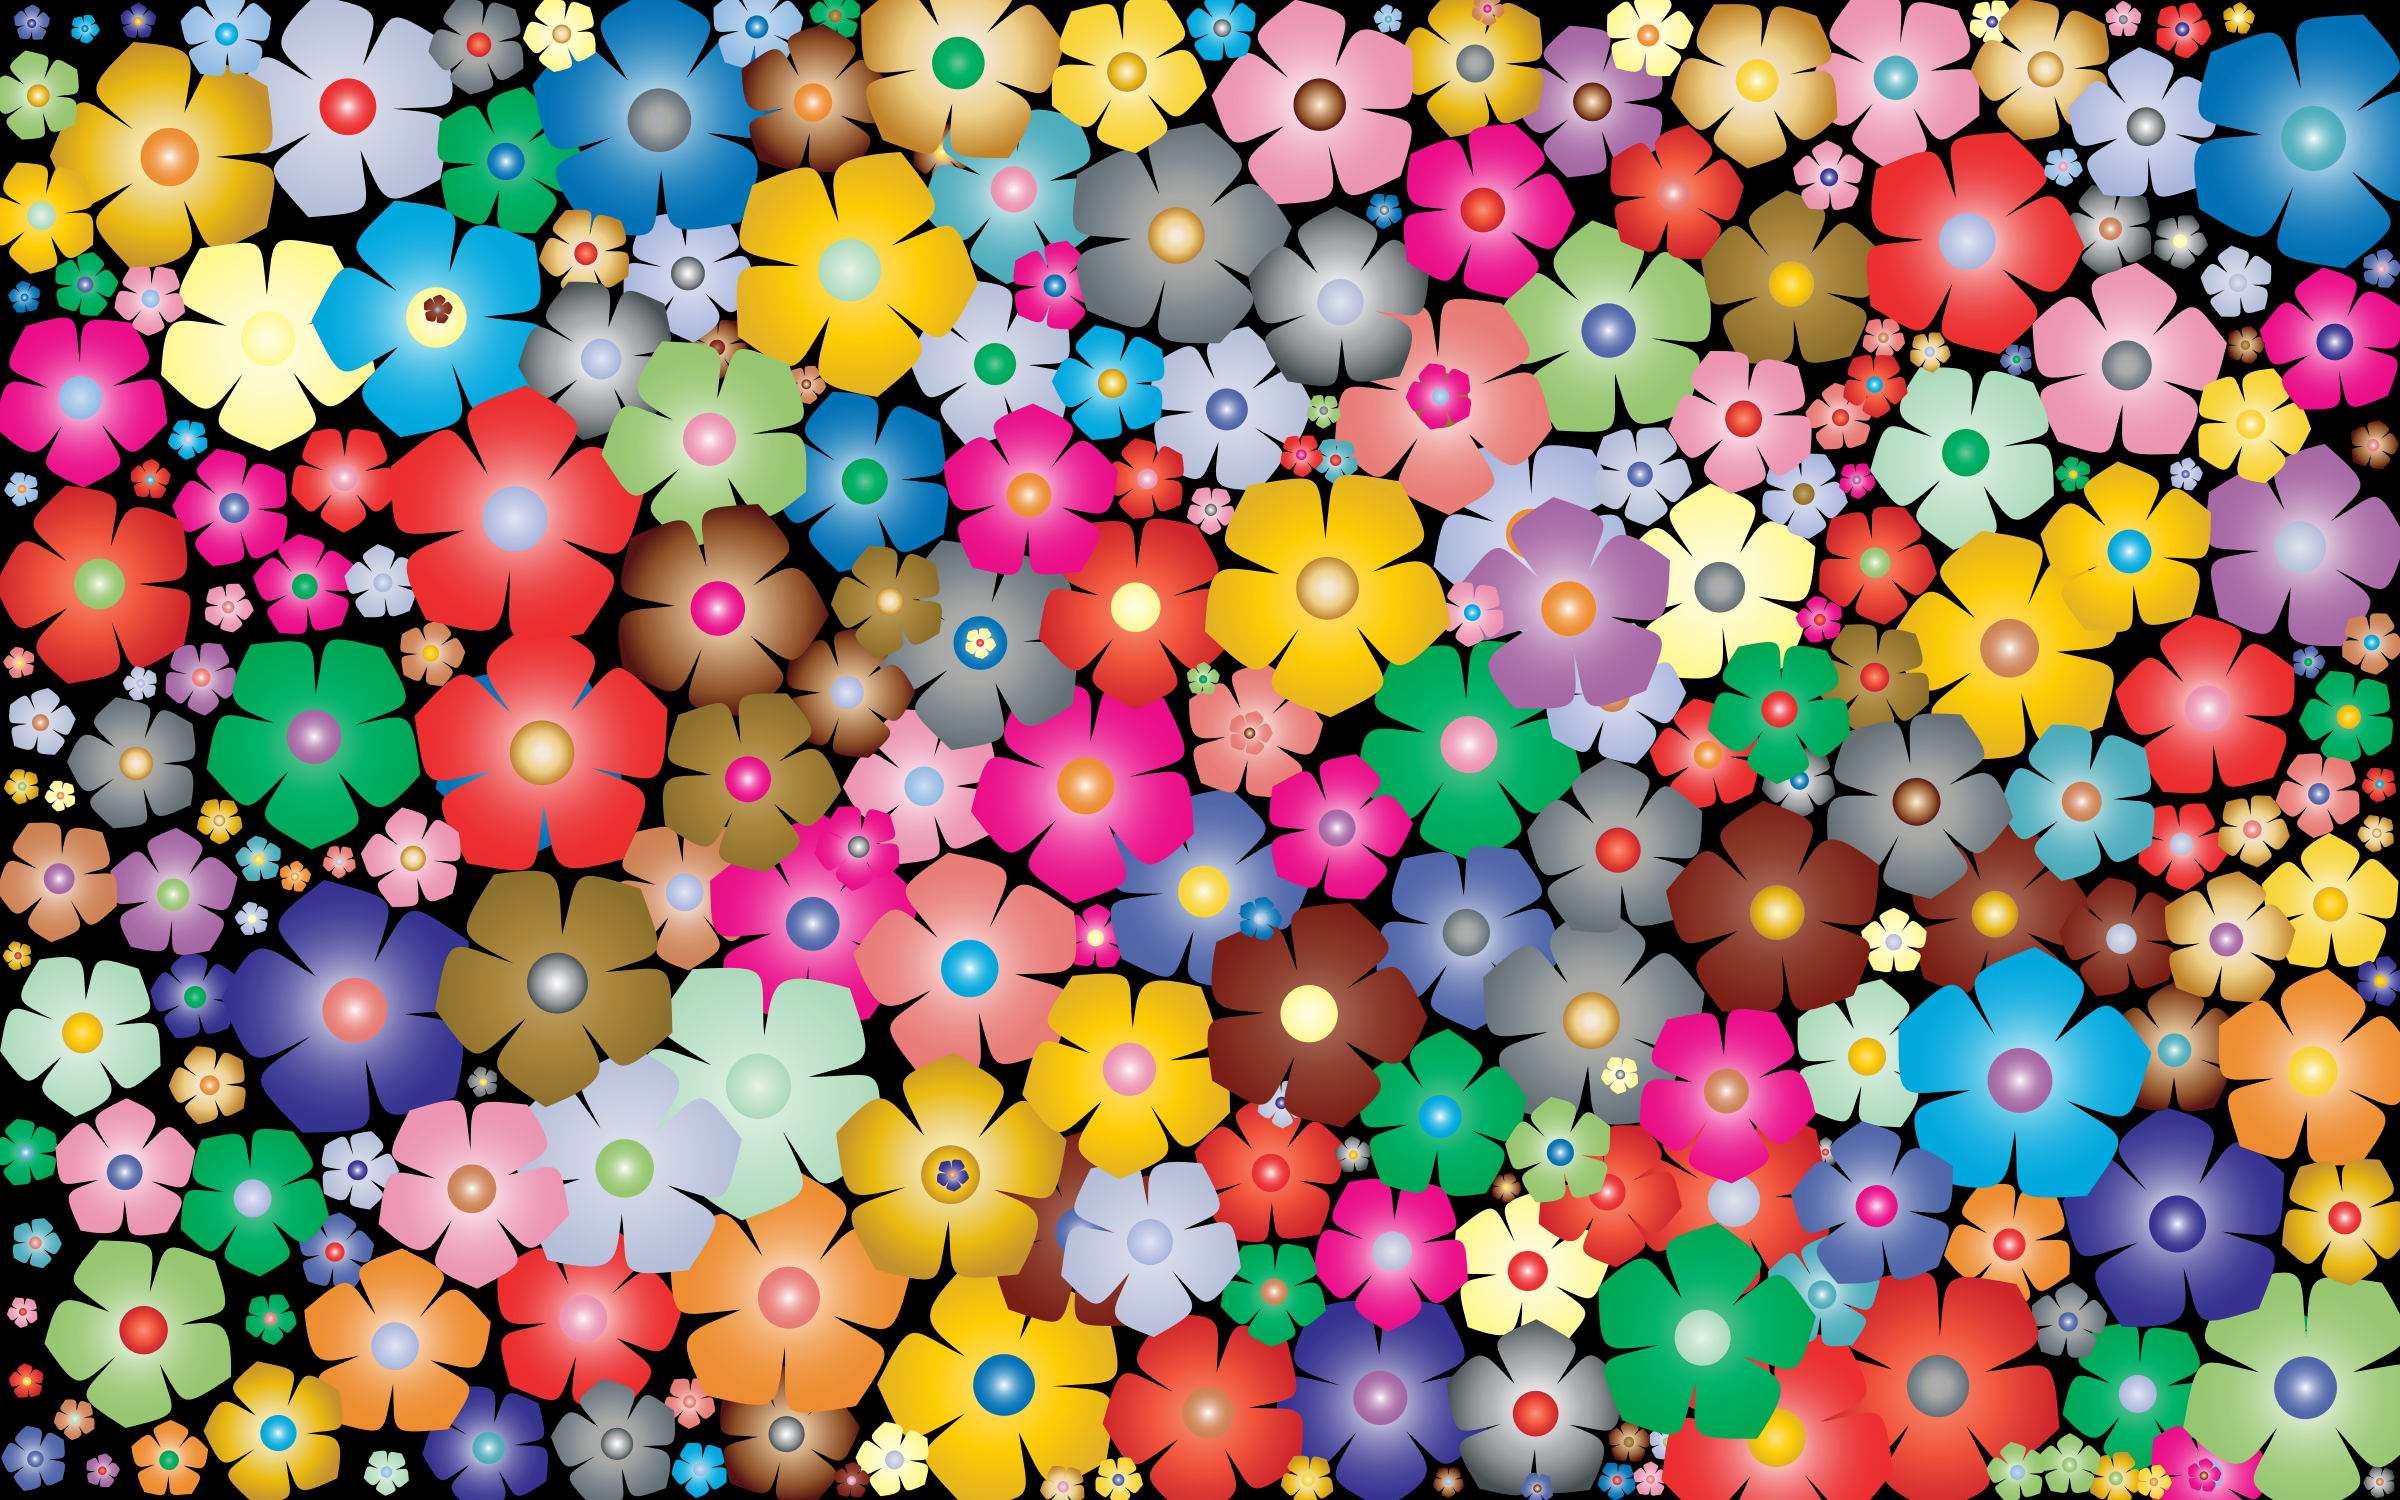 Simple Floral Background 2 by GDJ